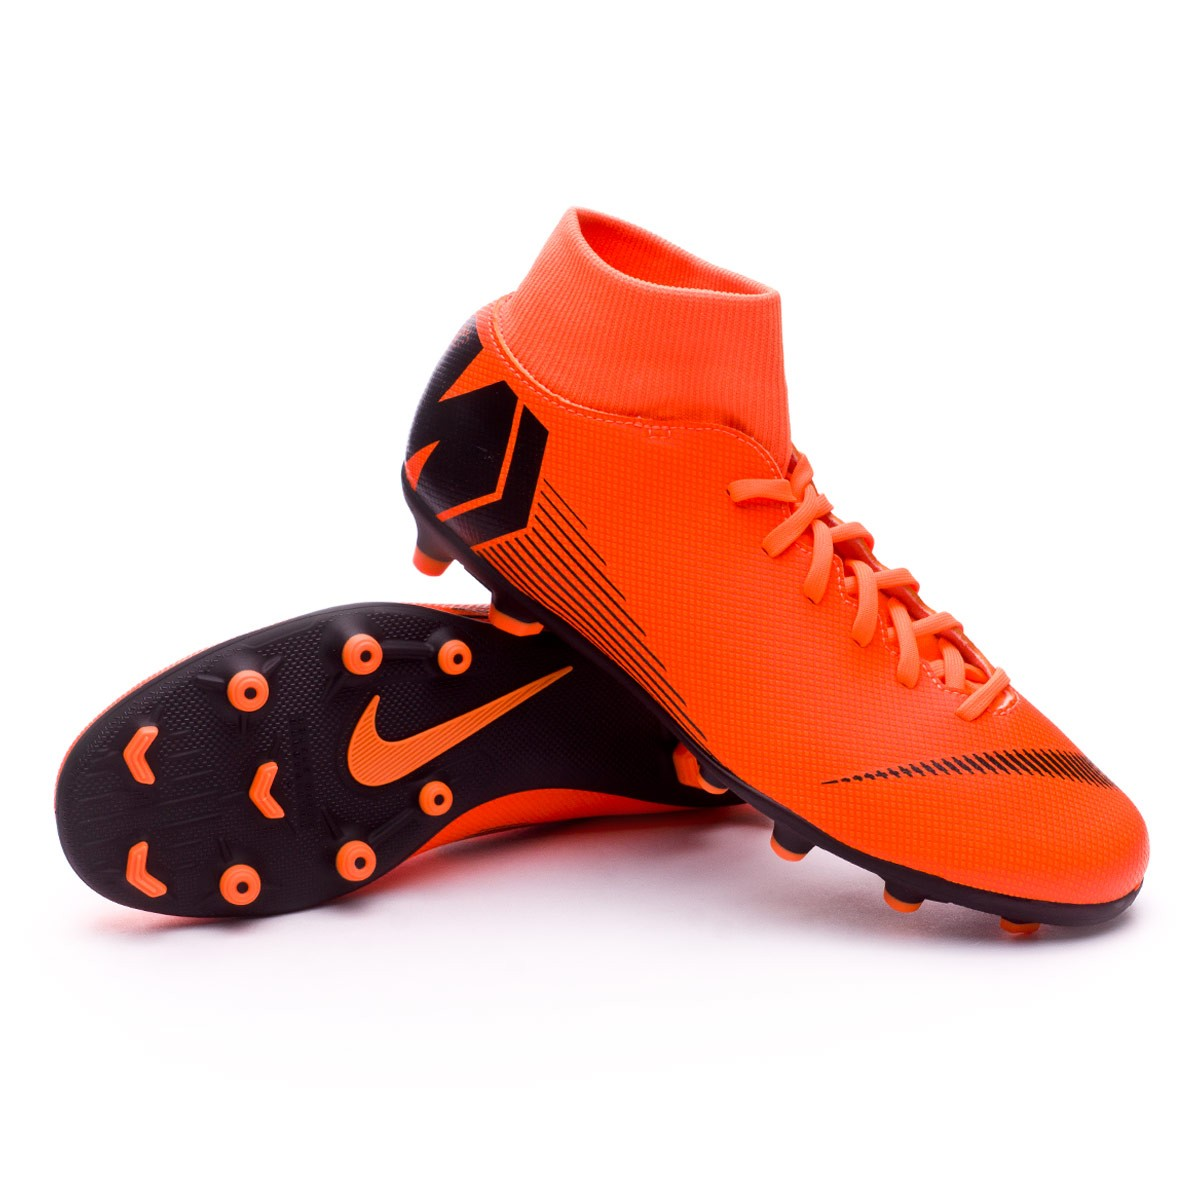 the best attitude 74d0f 42c3c Bota Mercurial Superfly VI Club MG Total orange-Black-Volt